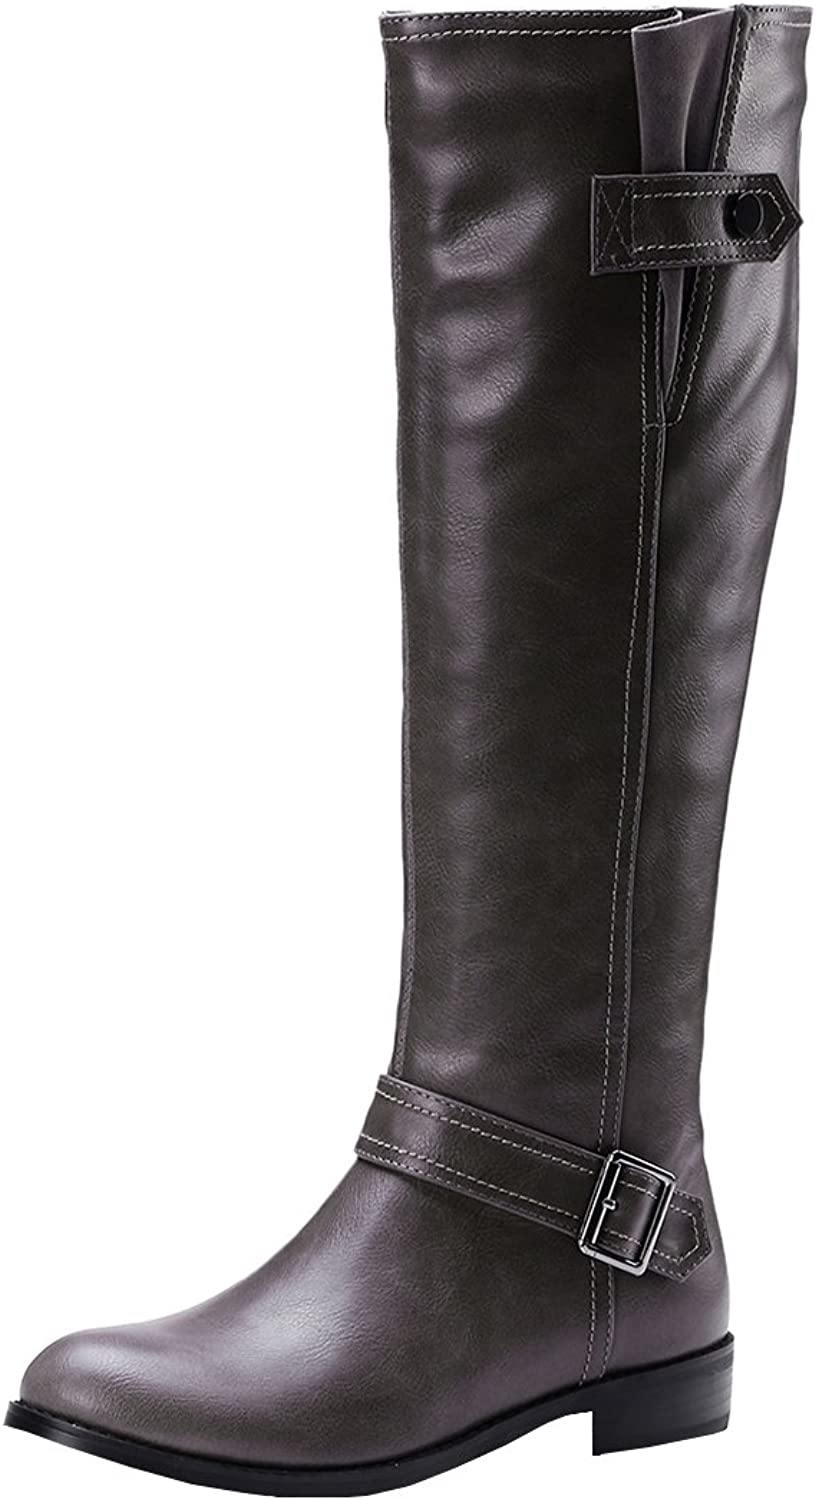 Agodor Womens Flat Closed-Toe Knee High Boots with Zip Buckle Winter Long shoes